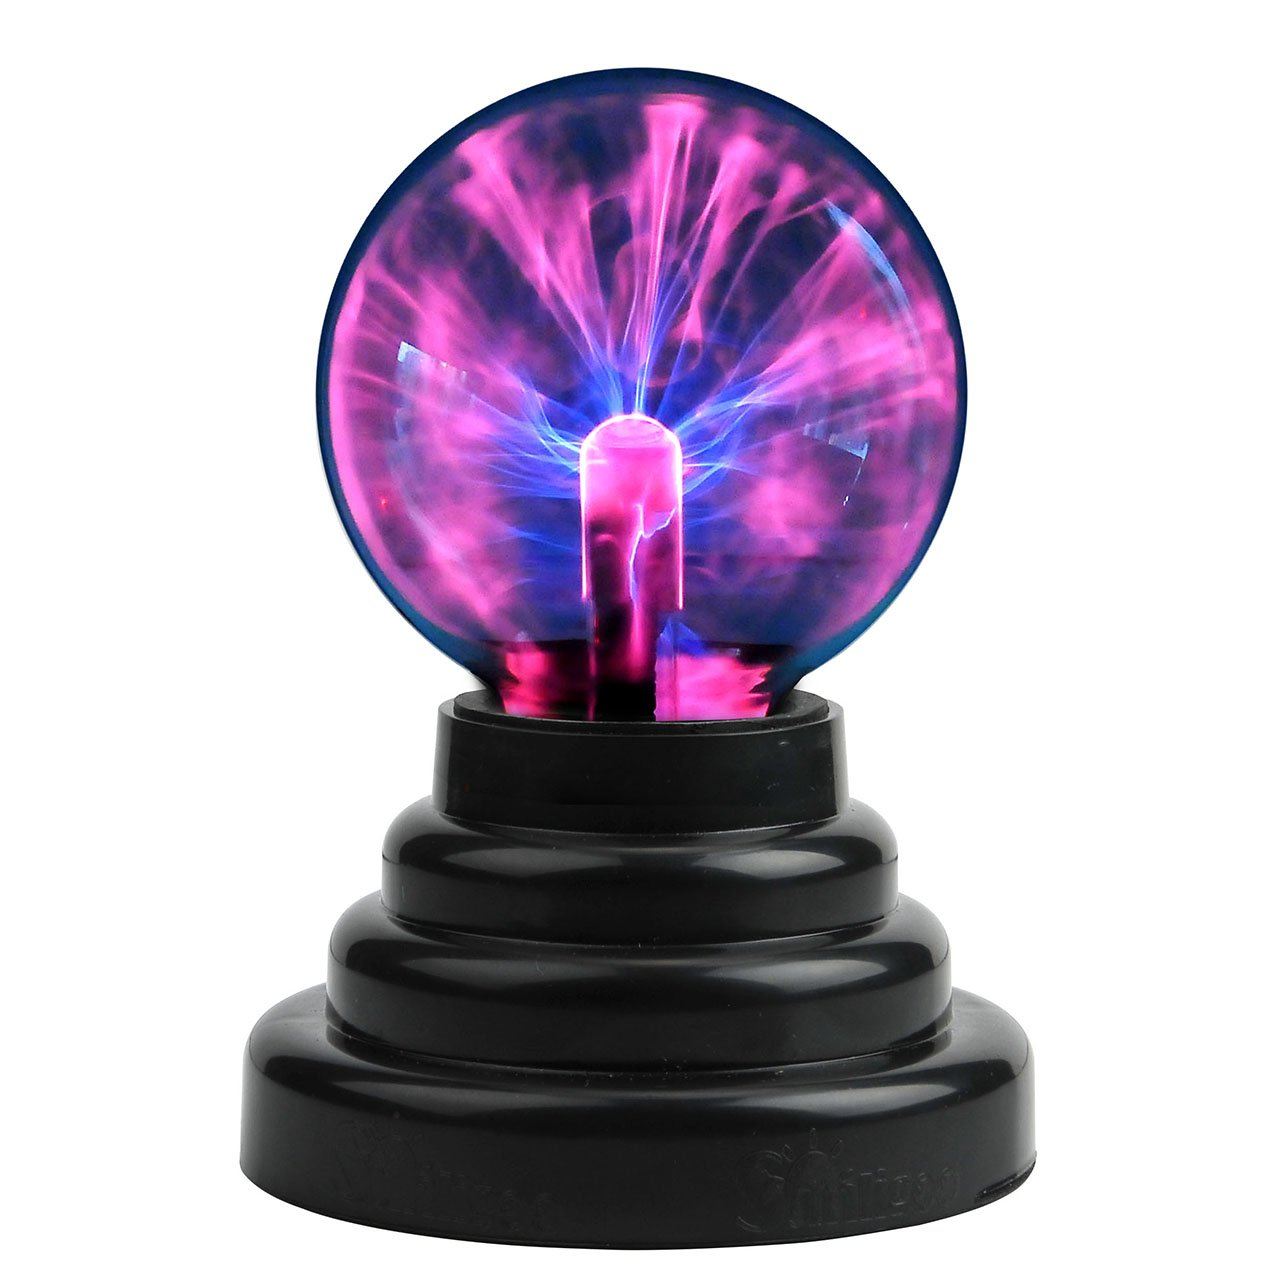 CozyCabin Plasma Ball Light, Thunder Lightning Plug-In Touch Sensitive - USB or Battery Powered For Parties, Decorations, Kids, Bedroom, Home, Gifts